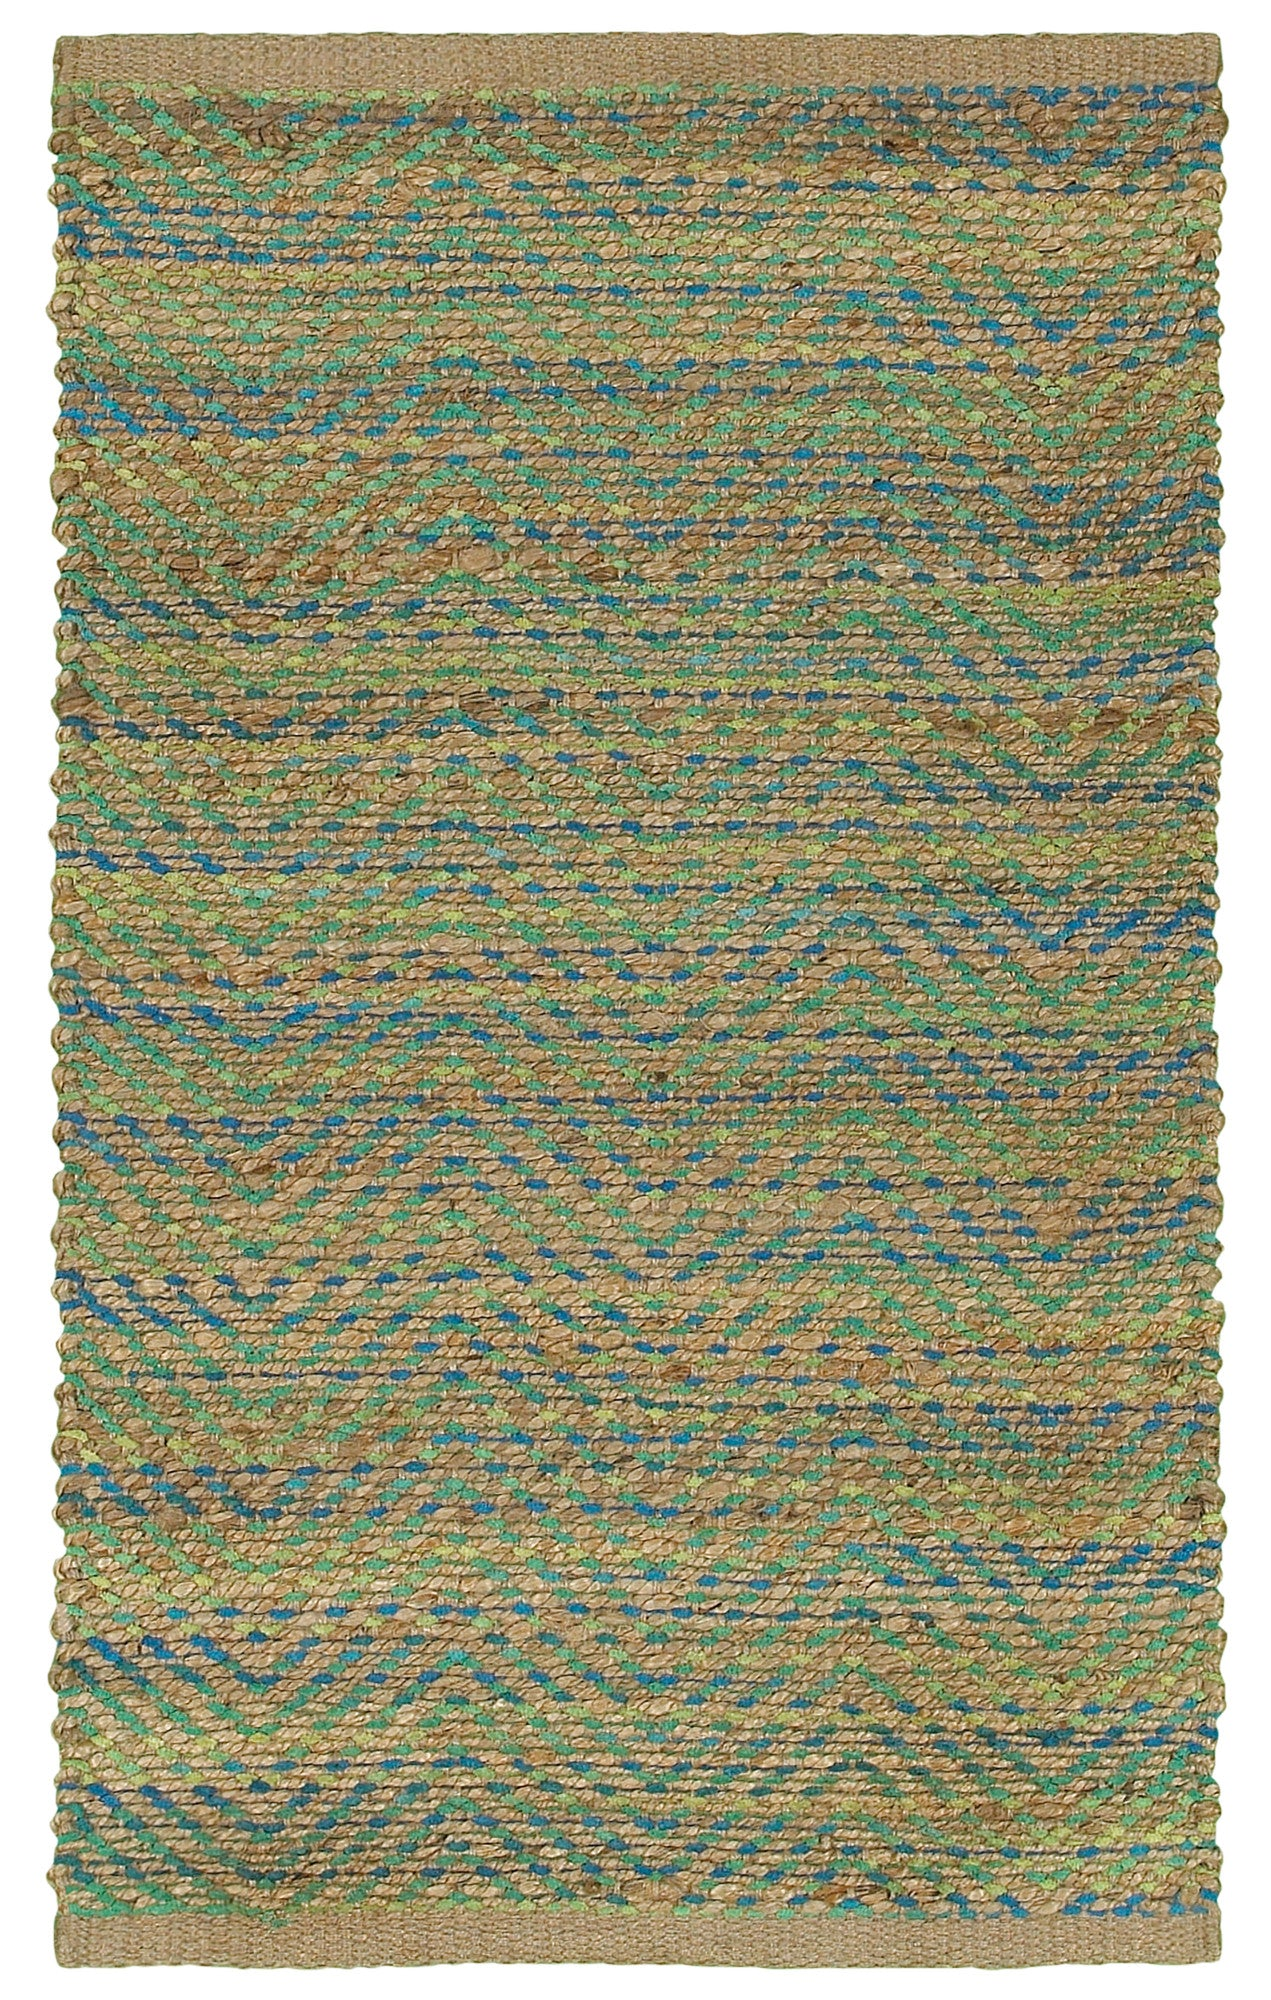 LR Resources Accent 04024 Green/Navy Area Rug